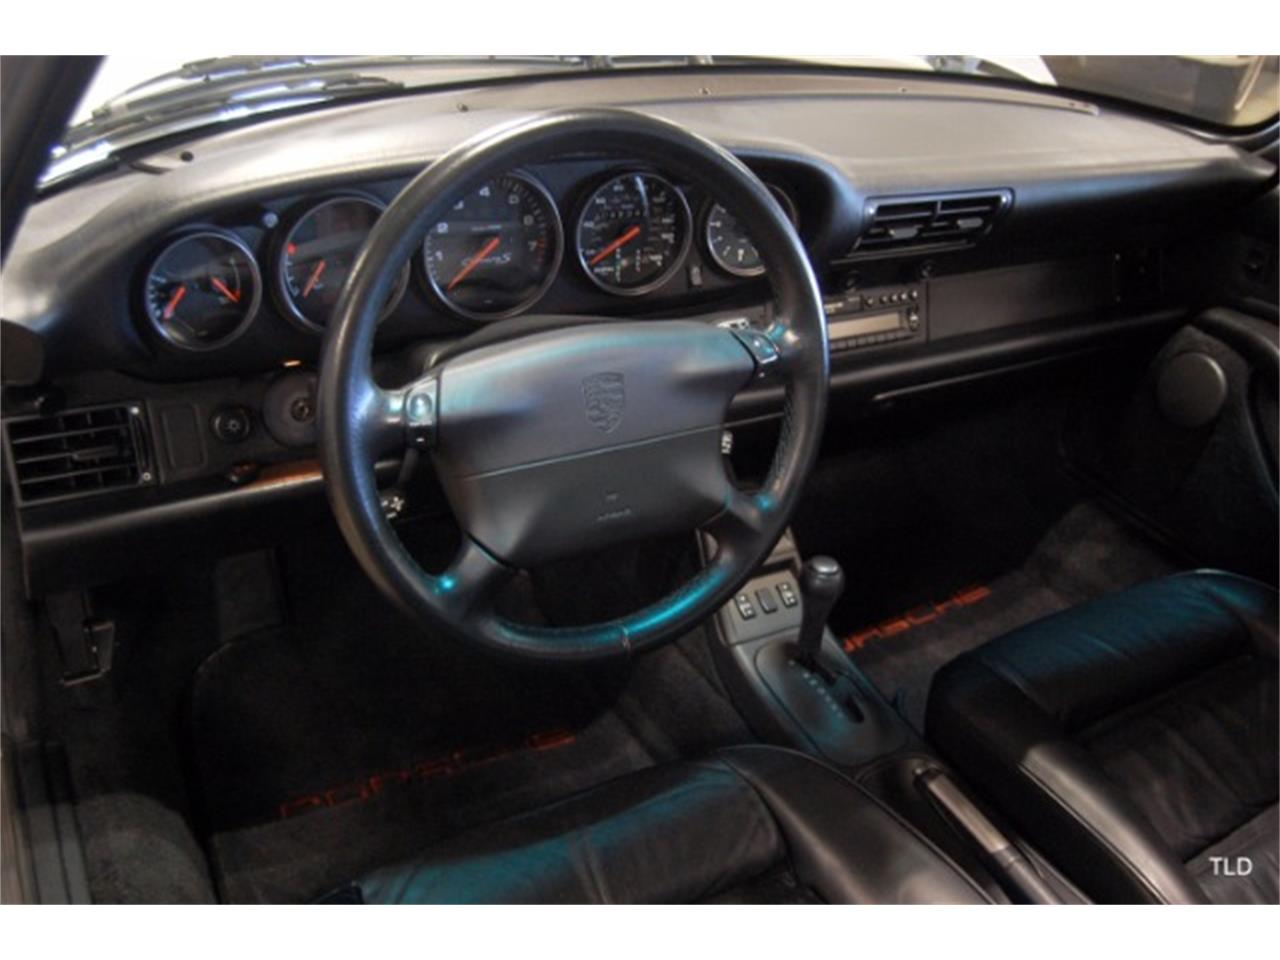 Large Picture of 1997 Porsche 911 located in Illinois - $58,000.00 - MHD7